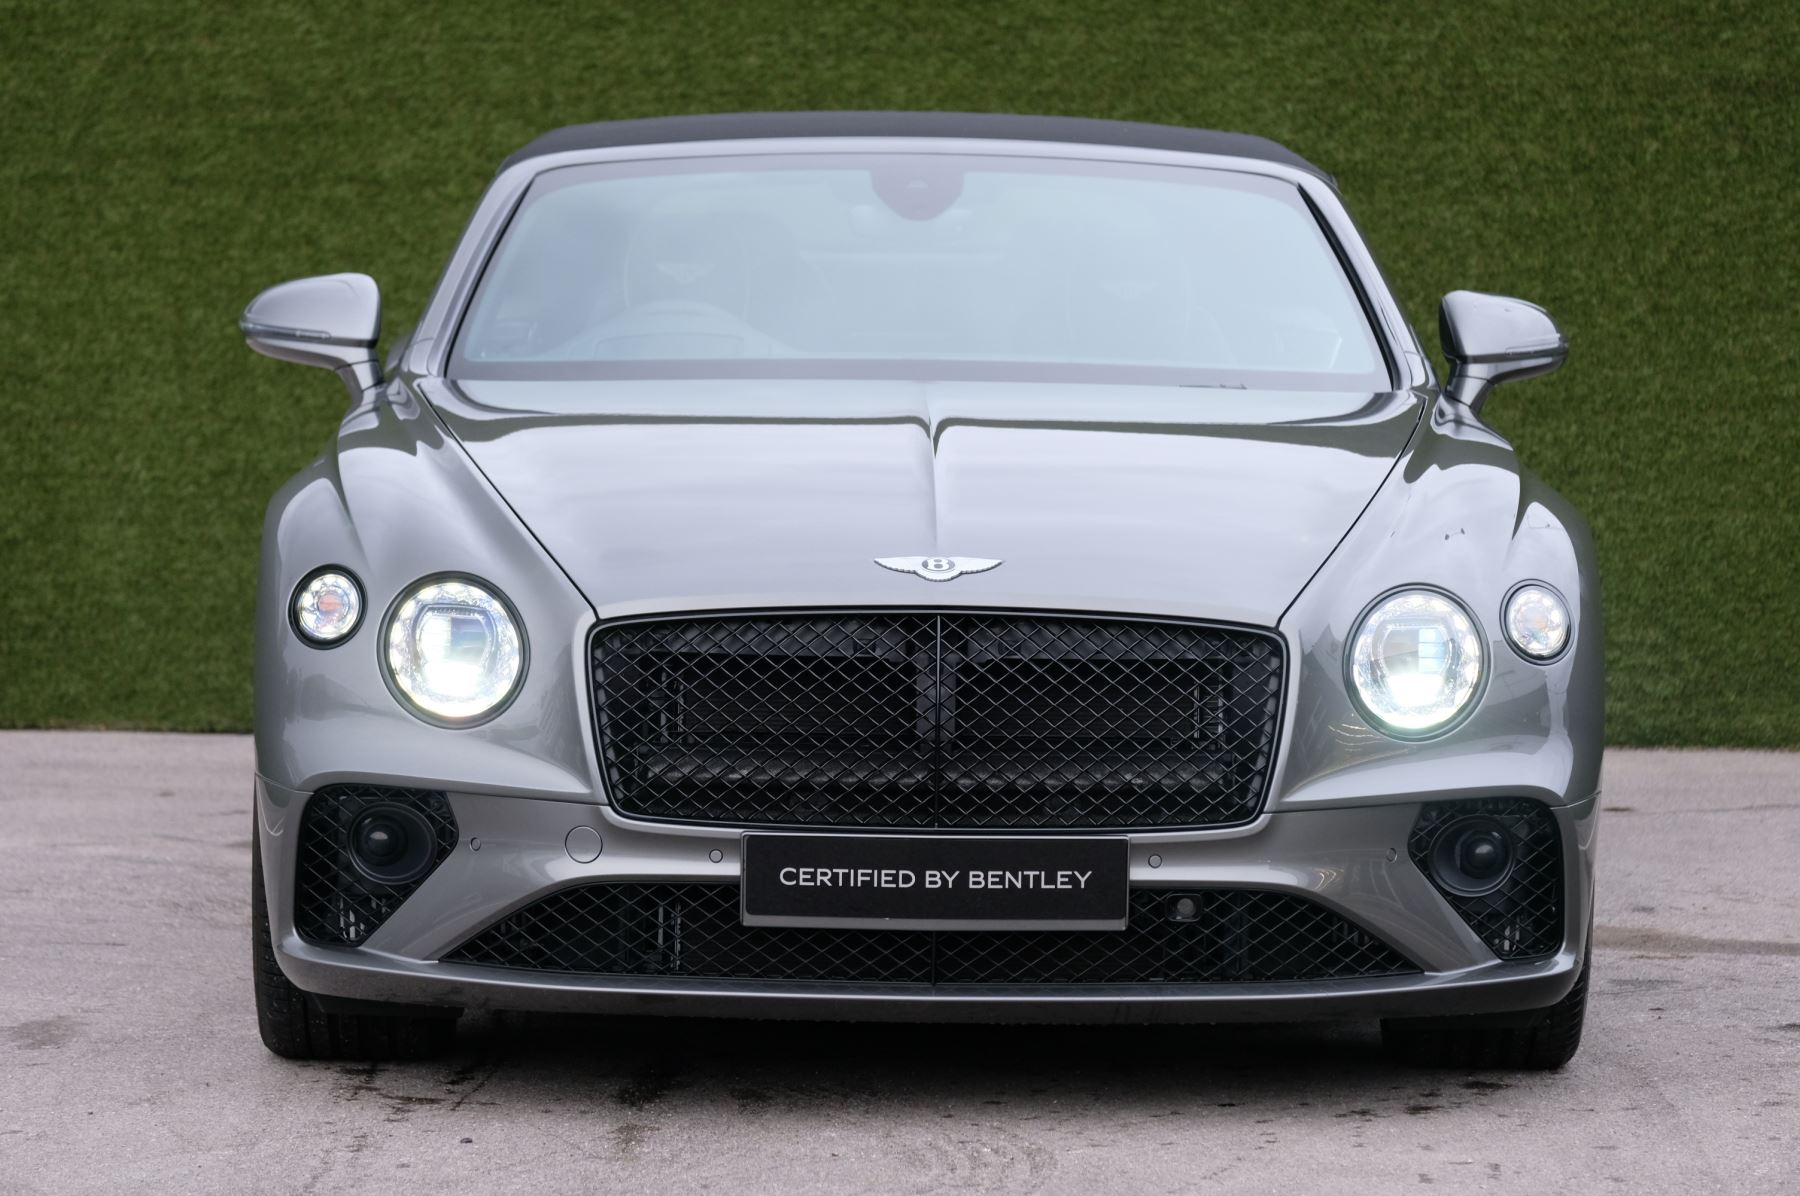 Bentley Continental GTC 4.0 V8 Mulliner Driving Spec Auto image 2